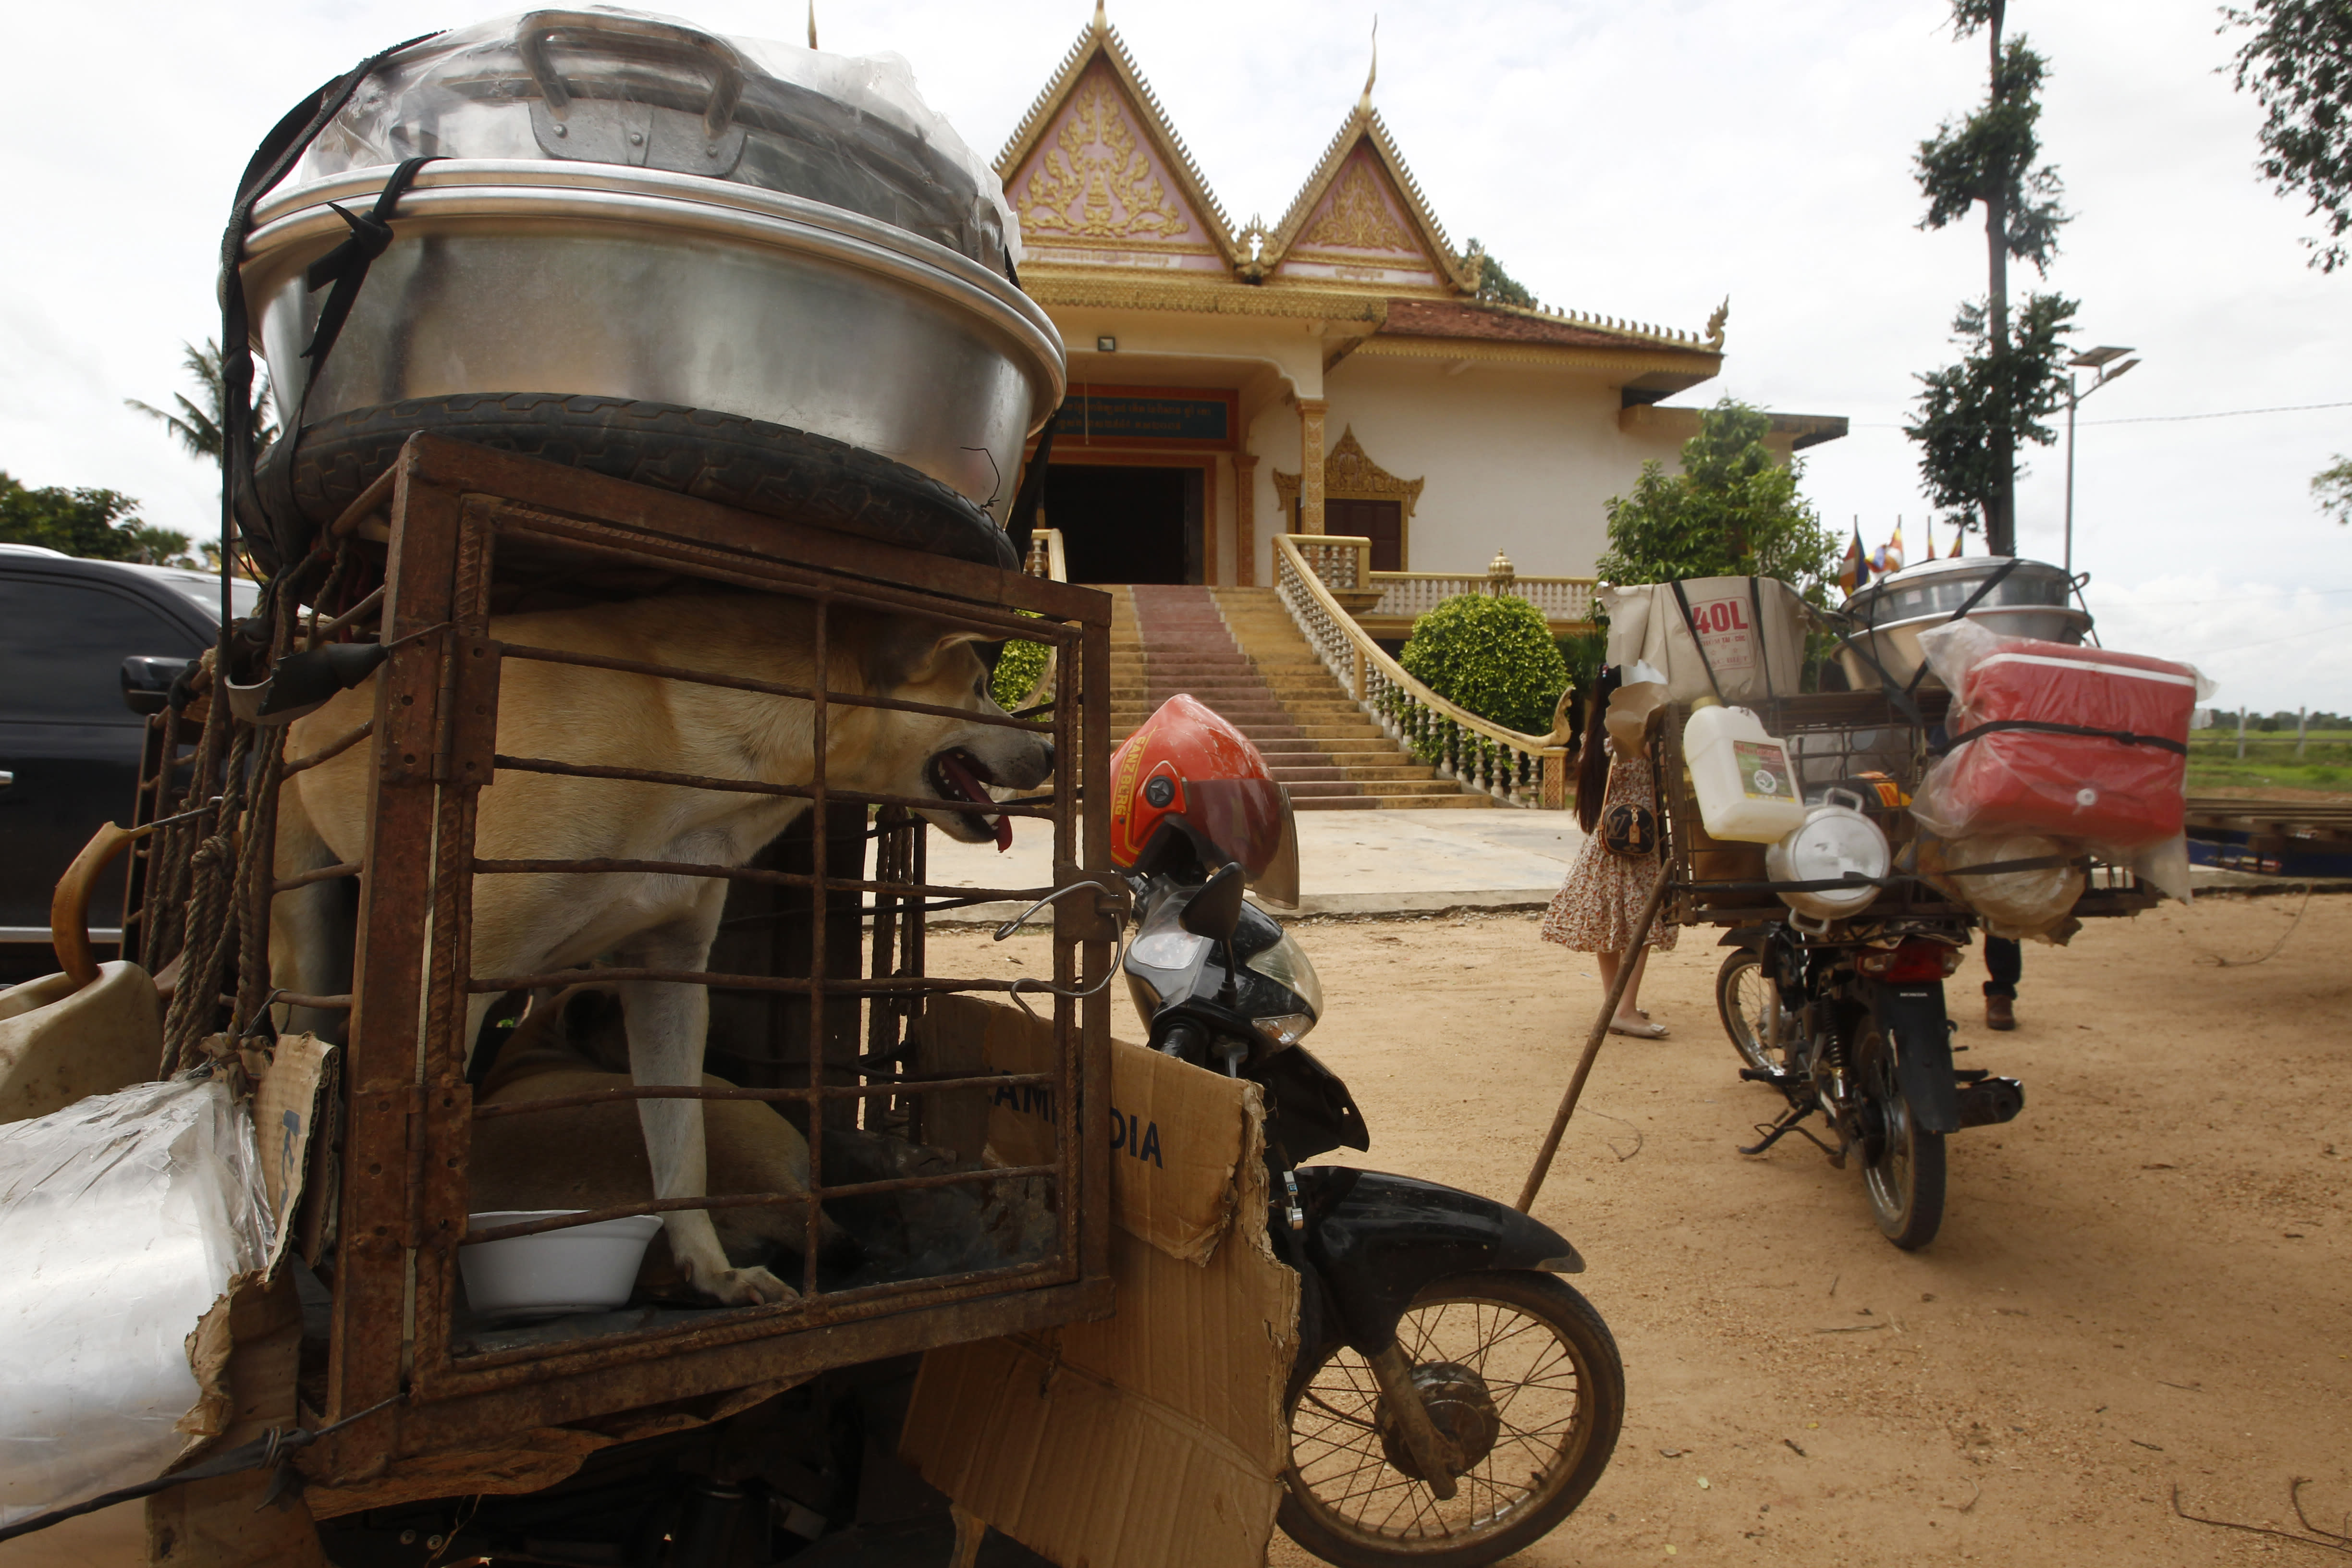 Dogs place in a cage are carrying at a back seat of motorbike as they supposed to be sold to slaughterhouses in a Buddhist pagoda in Tang Krasang village in Kampong Thom province north of Phnom Penh, Cambodia, Wednesday, Aug. 5, 2020. Animal rights activists in Cambodia have gained a small victory in their effort to end the trade in dog meat, convincing a canine slaughterhouse in one village to abandon the business. (AP Photo/Heng Sinith)